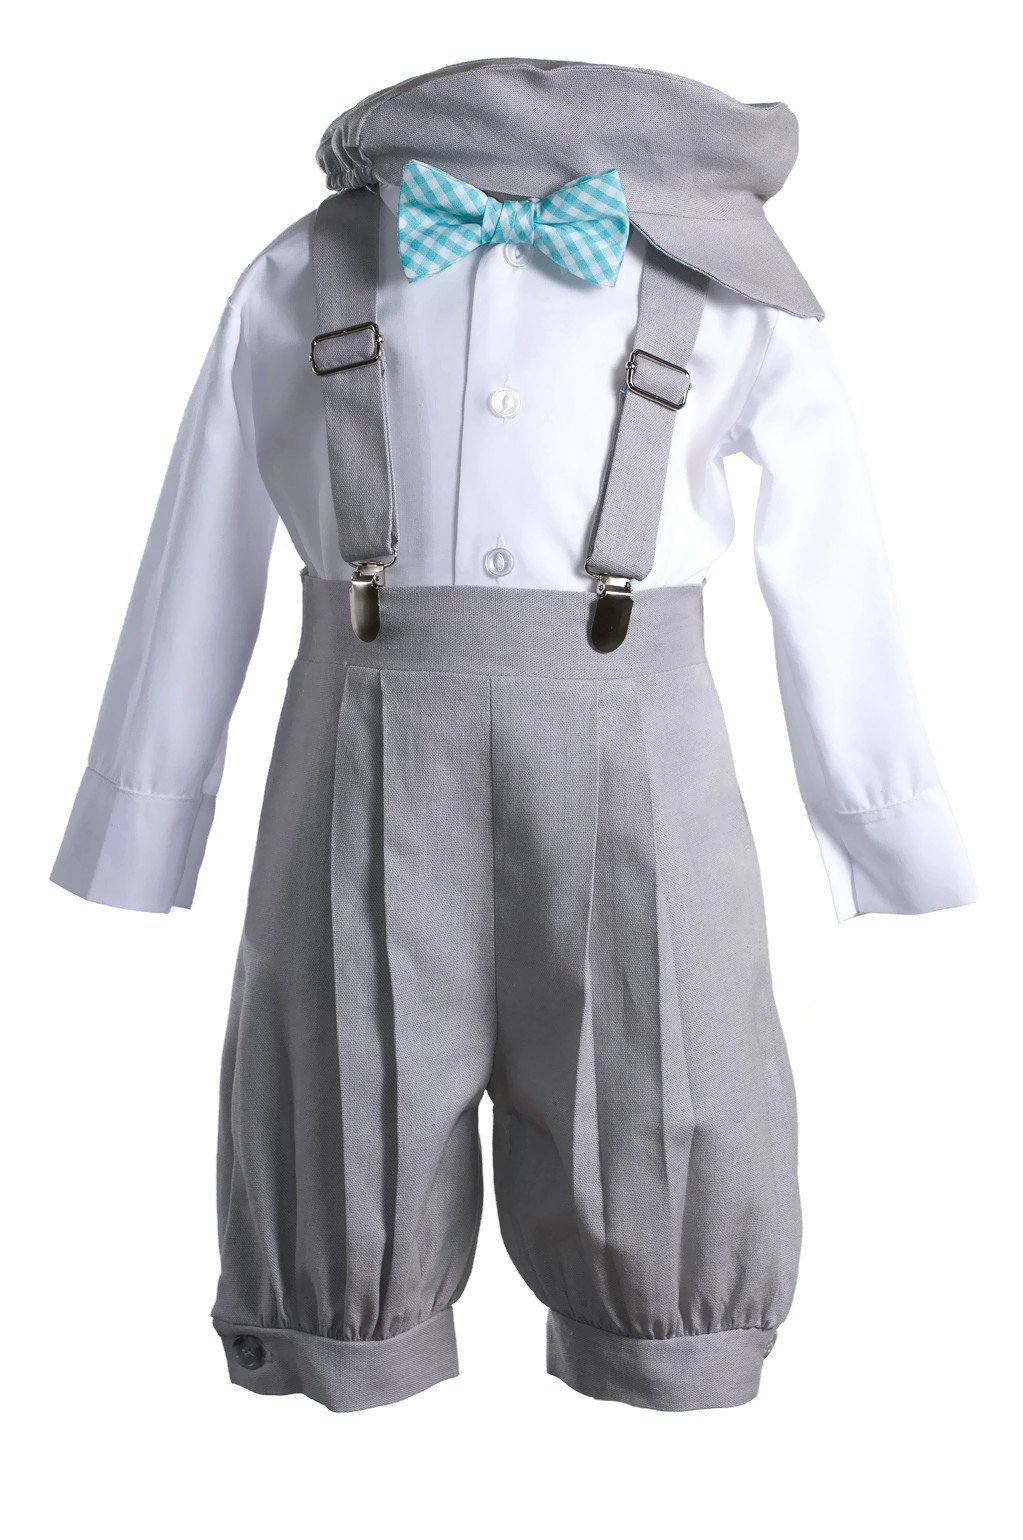 Boys Grey Linen Knicker Outfit Aqua Gingham Bow Tie Baby and Toddlers (18 to 24 Month) by Tuxgear